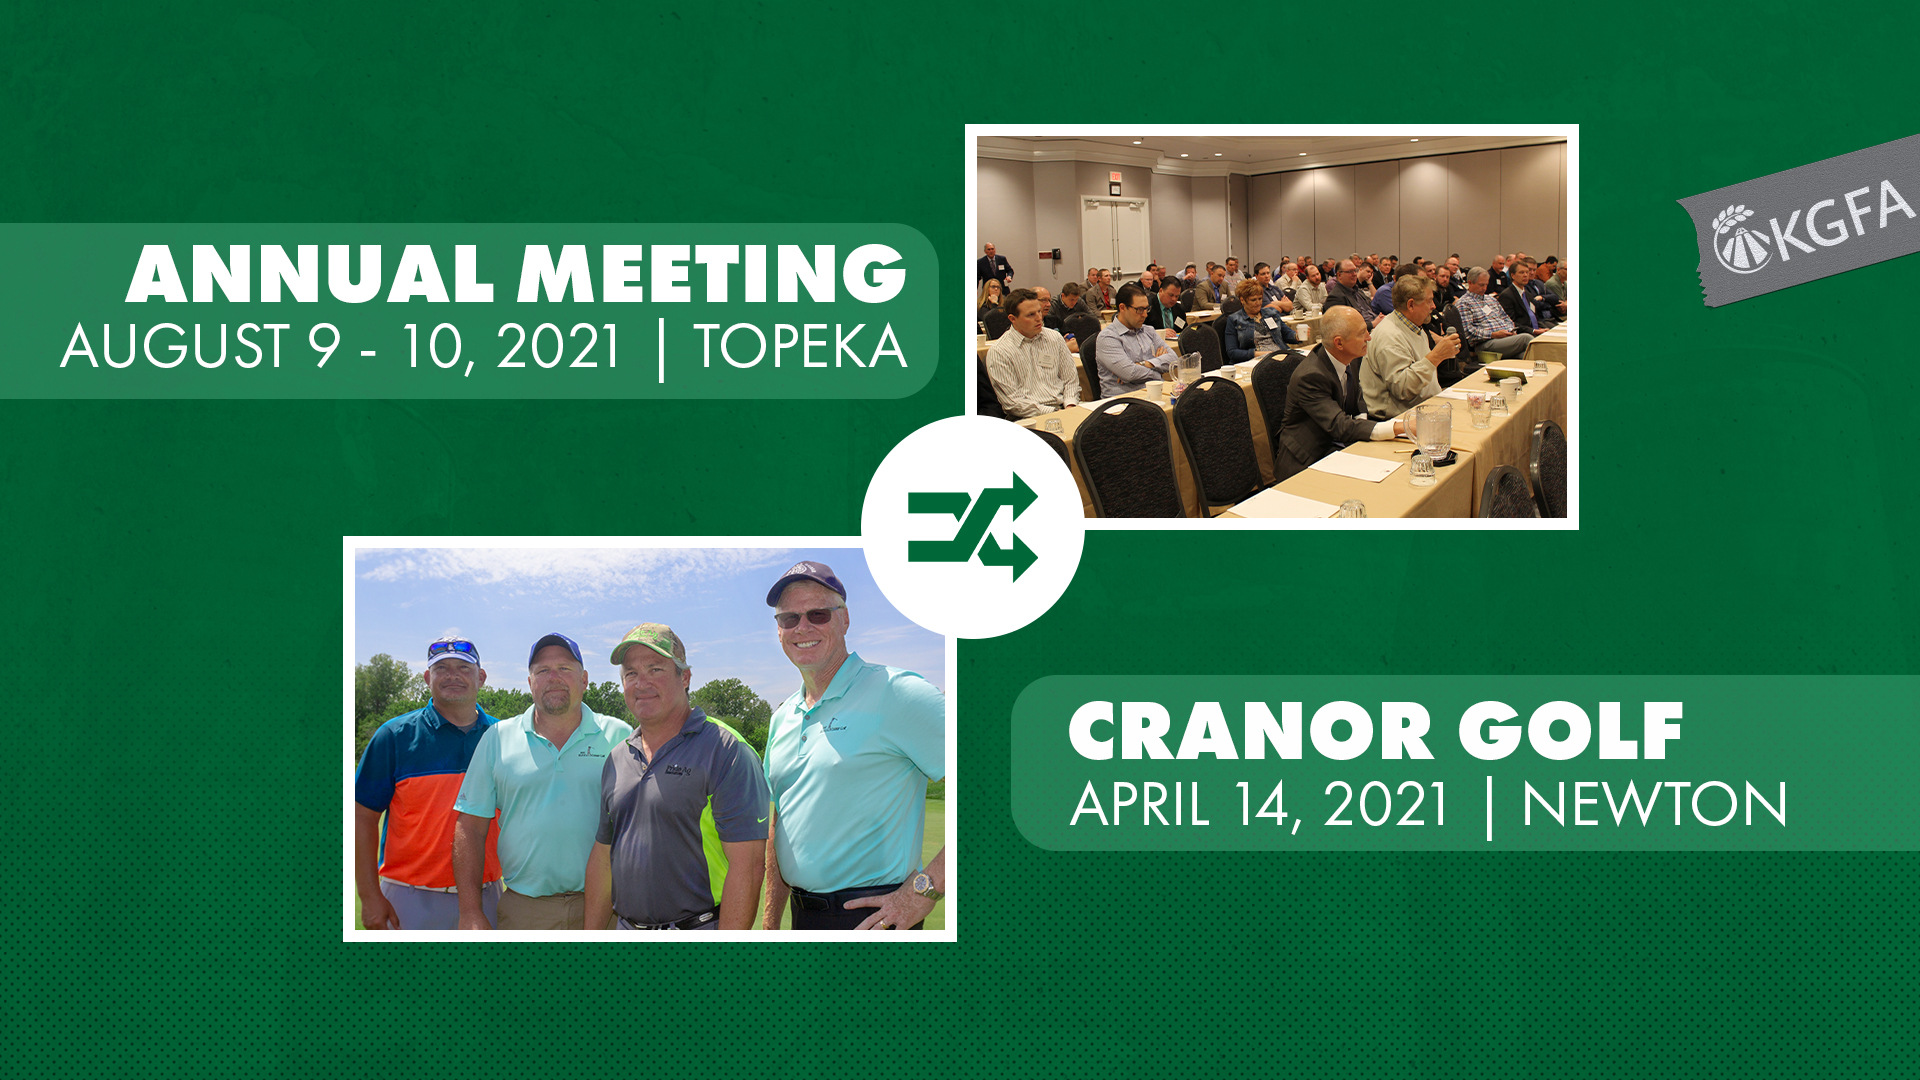 KGFA Switches Cranor and Annual Meeting Dates